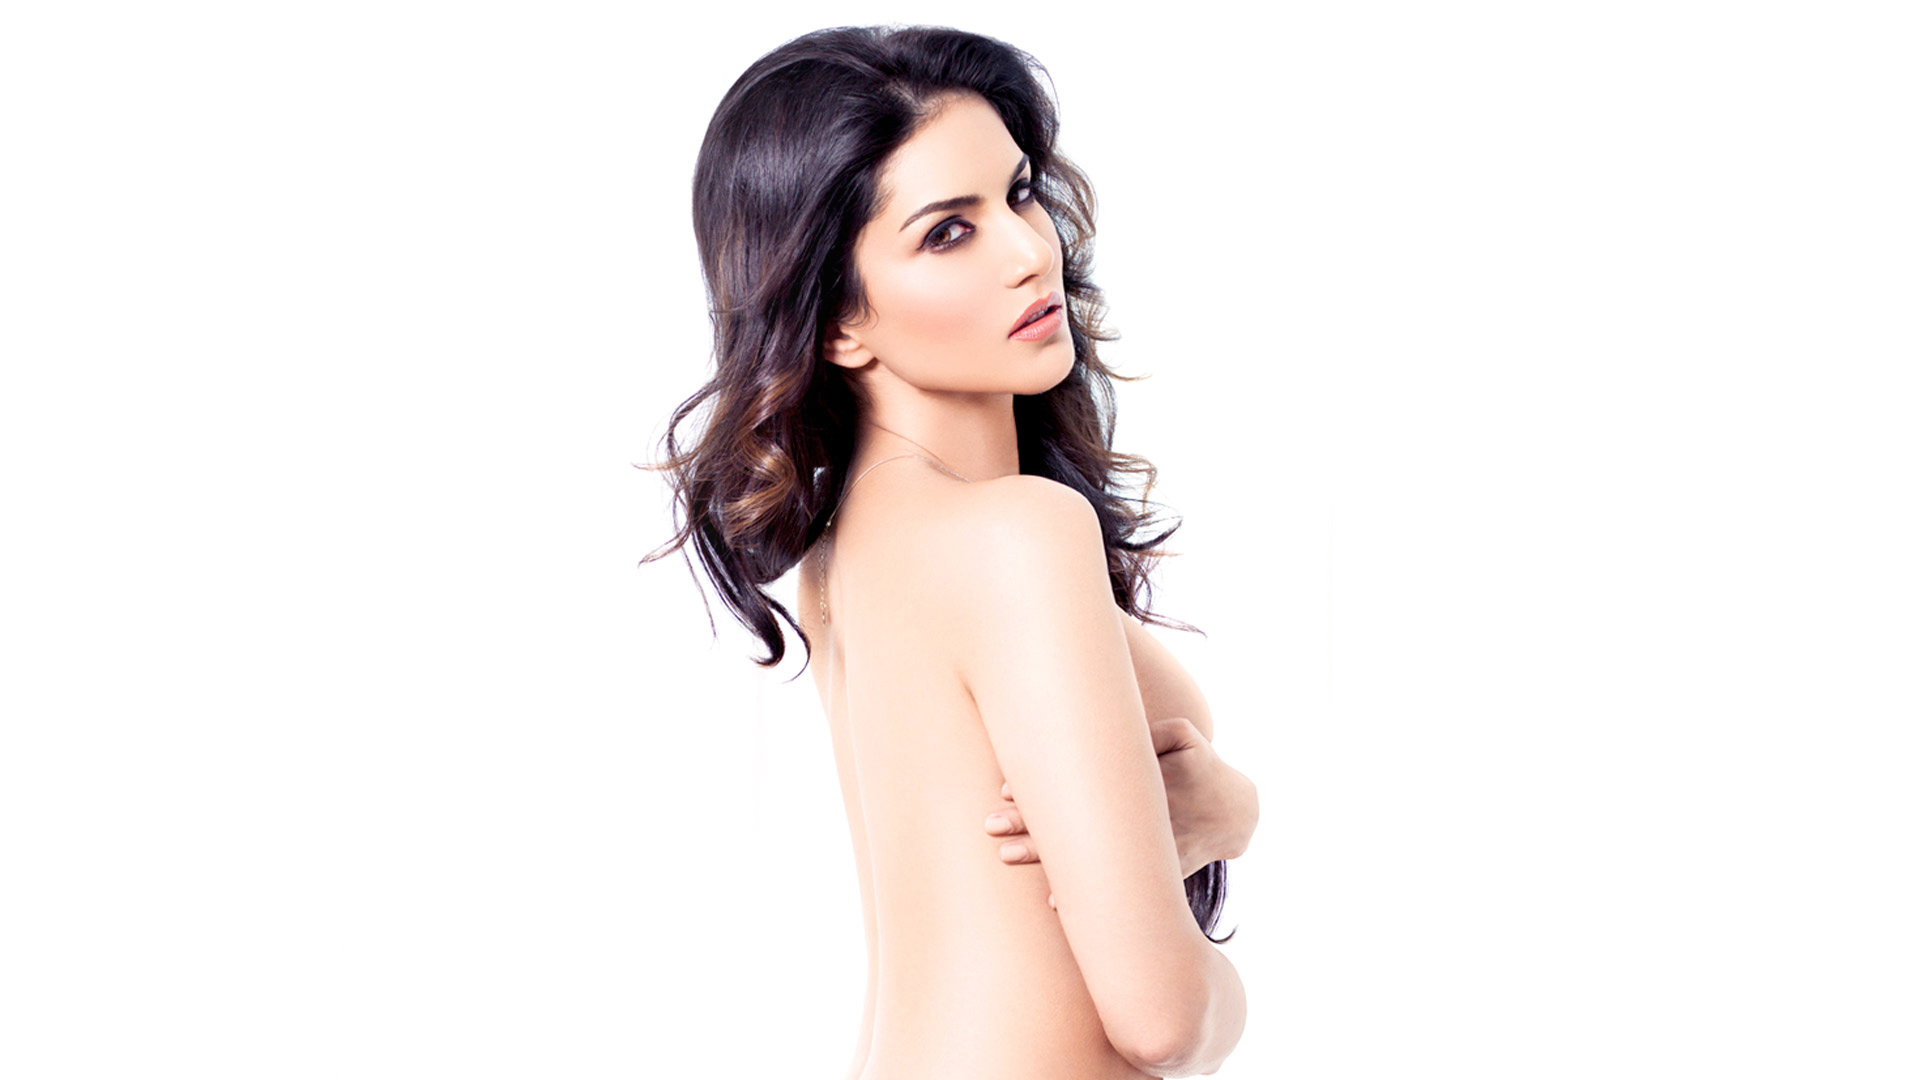 1366x768 Sachin Tendulkar Wallpapers Hd Sunny Leone Nude Latest Hd Wallpapers Popopics Com